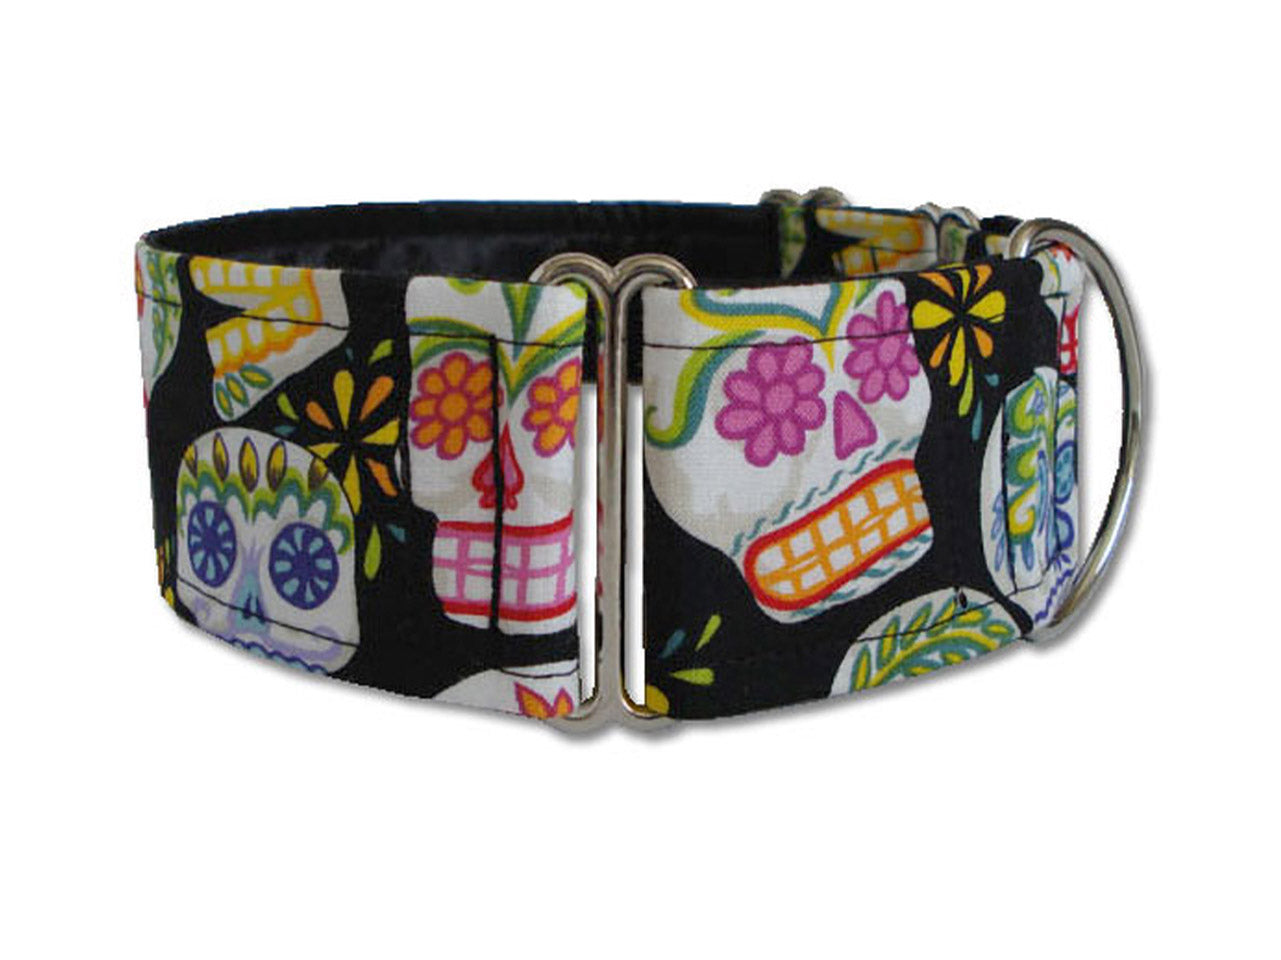 Colorful sugar skulls on black are the perfect accessory for Dia de los Muertos or any day your pooch wants to show some style!